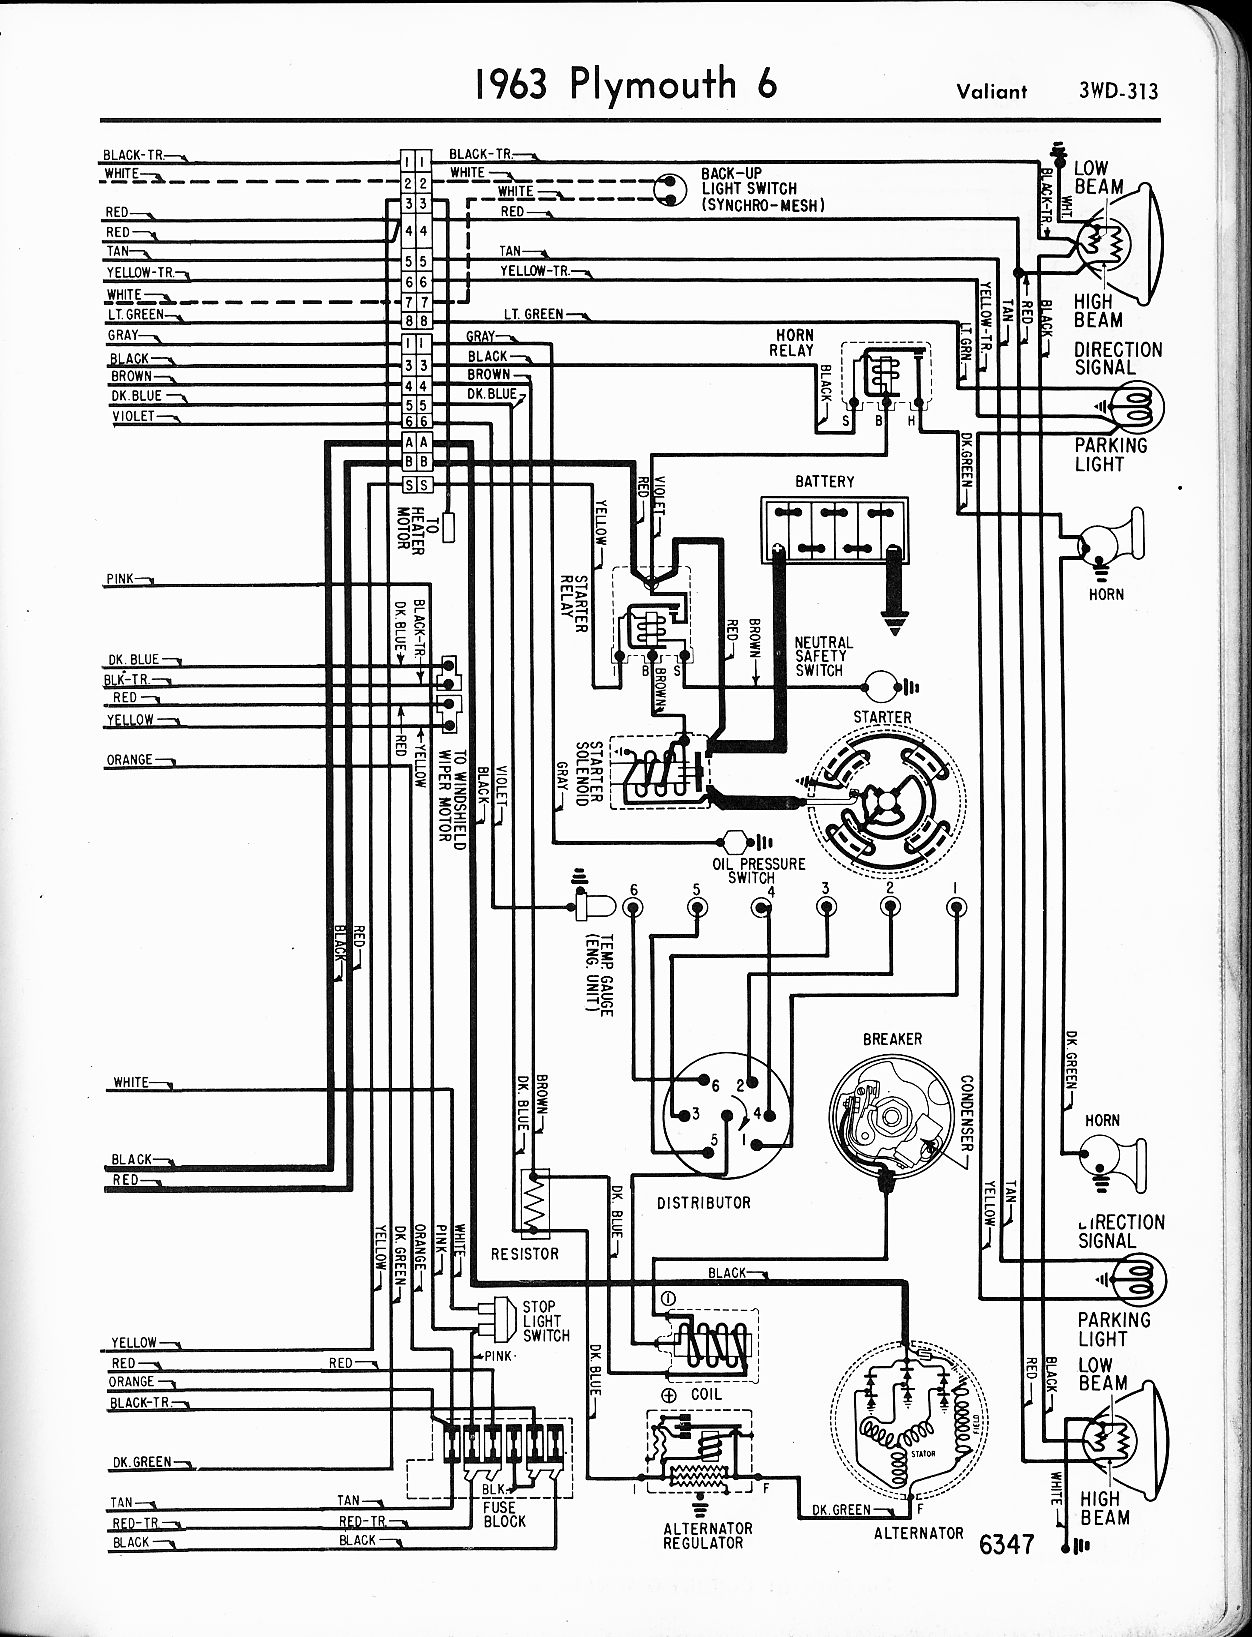 1972 charger wiring diagram